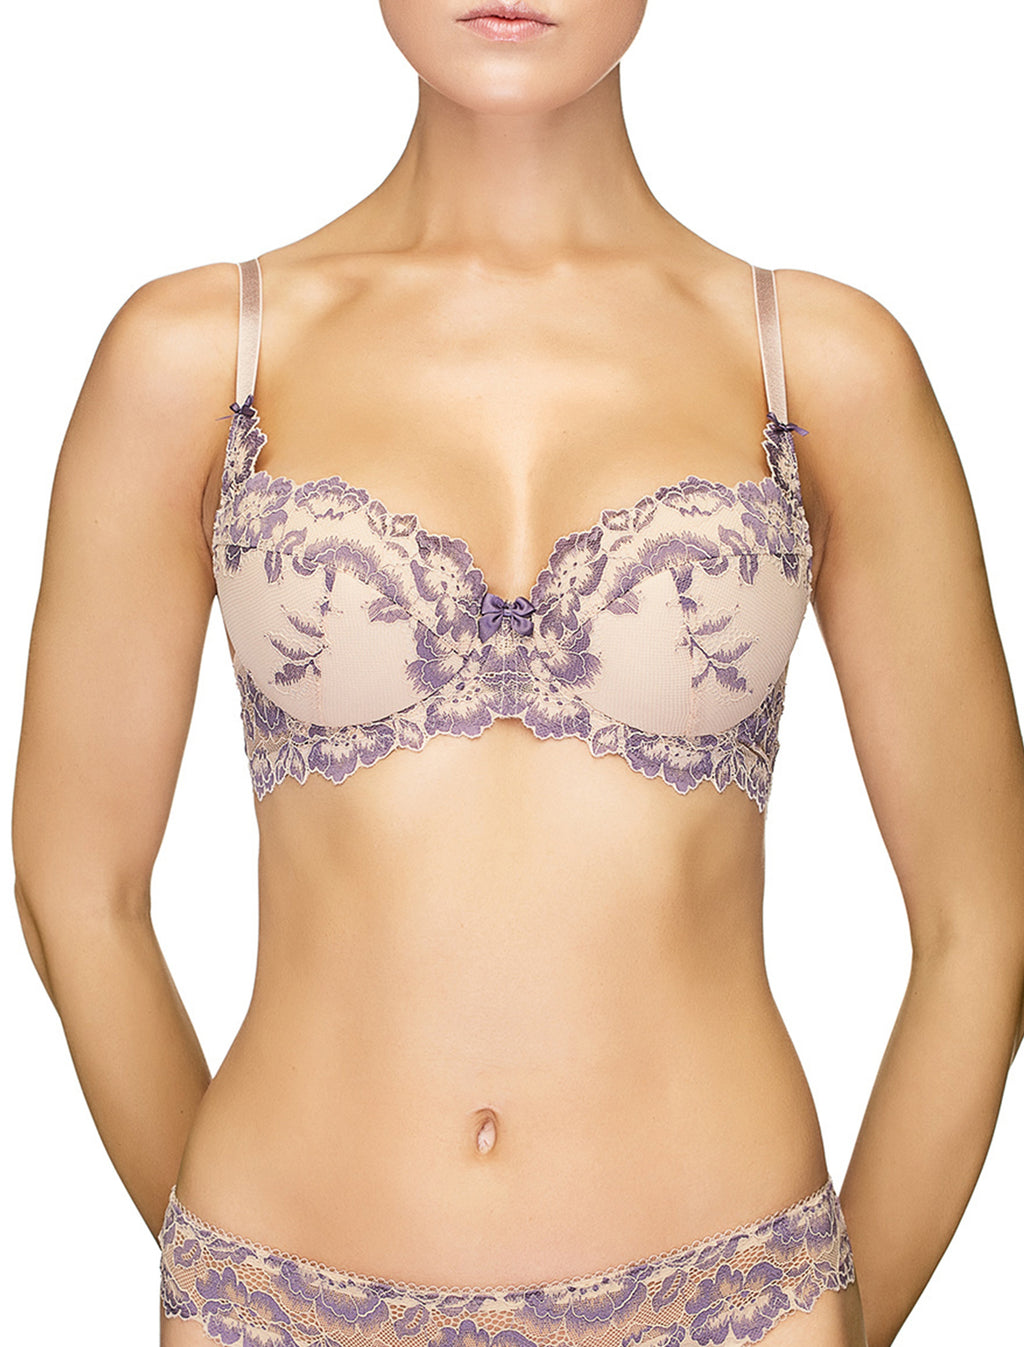 Lauma, Nude Lace Push-Up Bra, On Model Front, 04J15